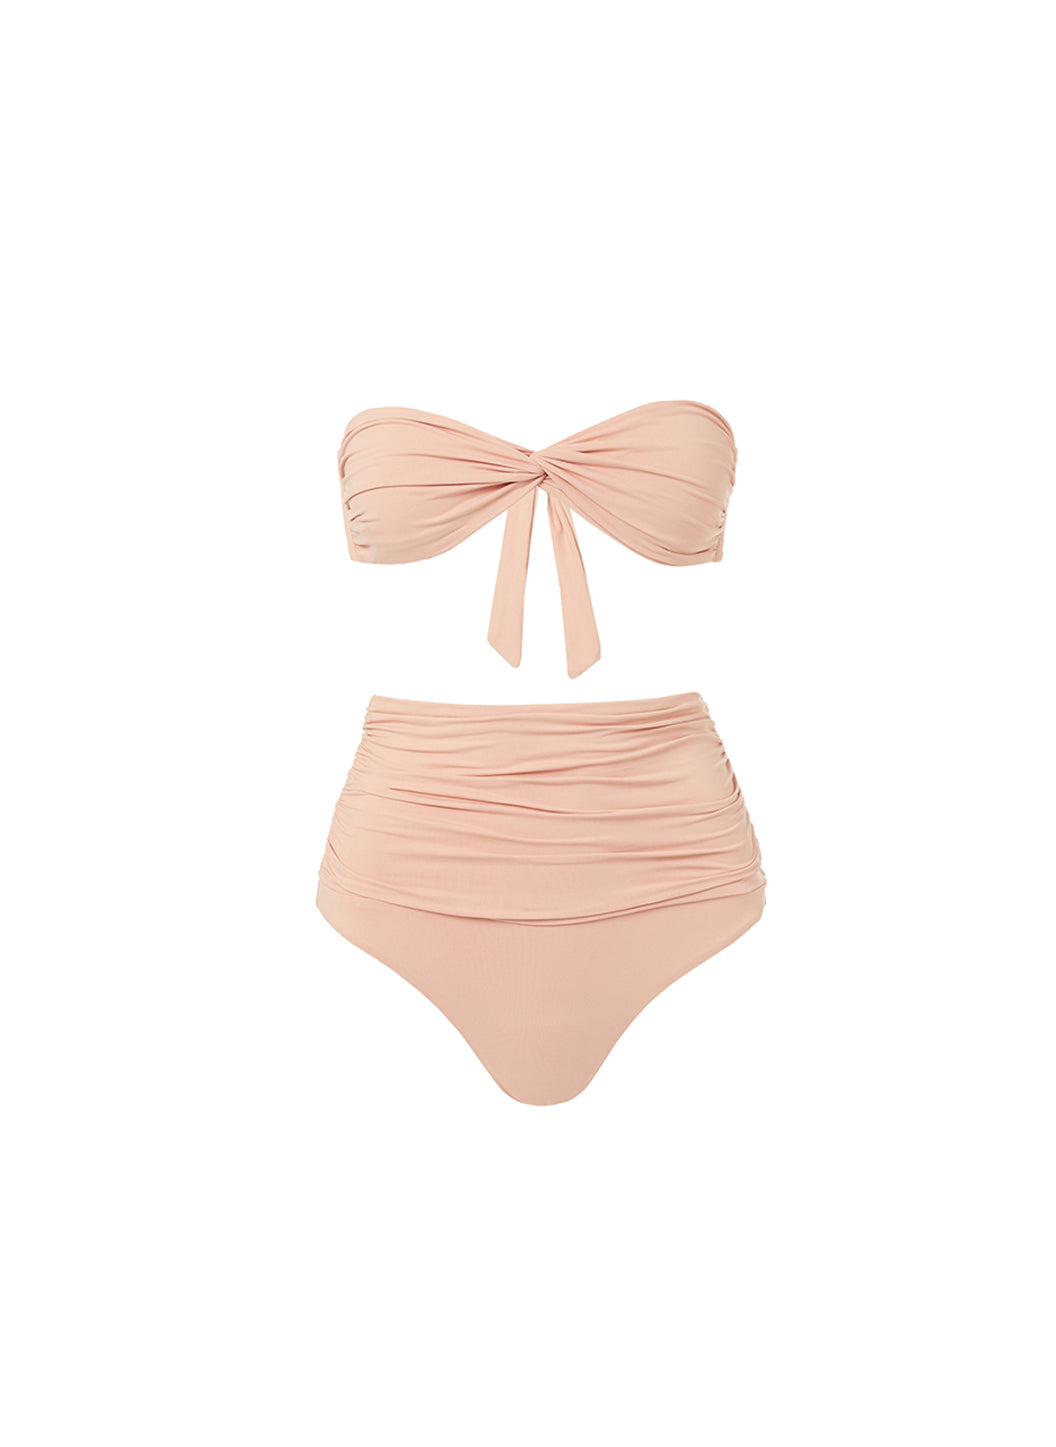 Lyon Tan High Waisted Bandeau Bikini - Melissa Odabash Brown Bikinis